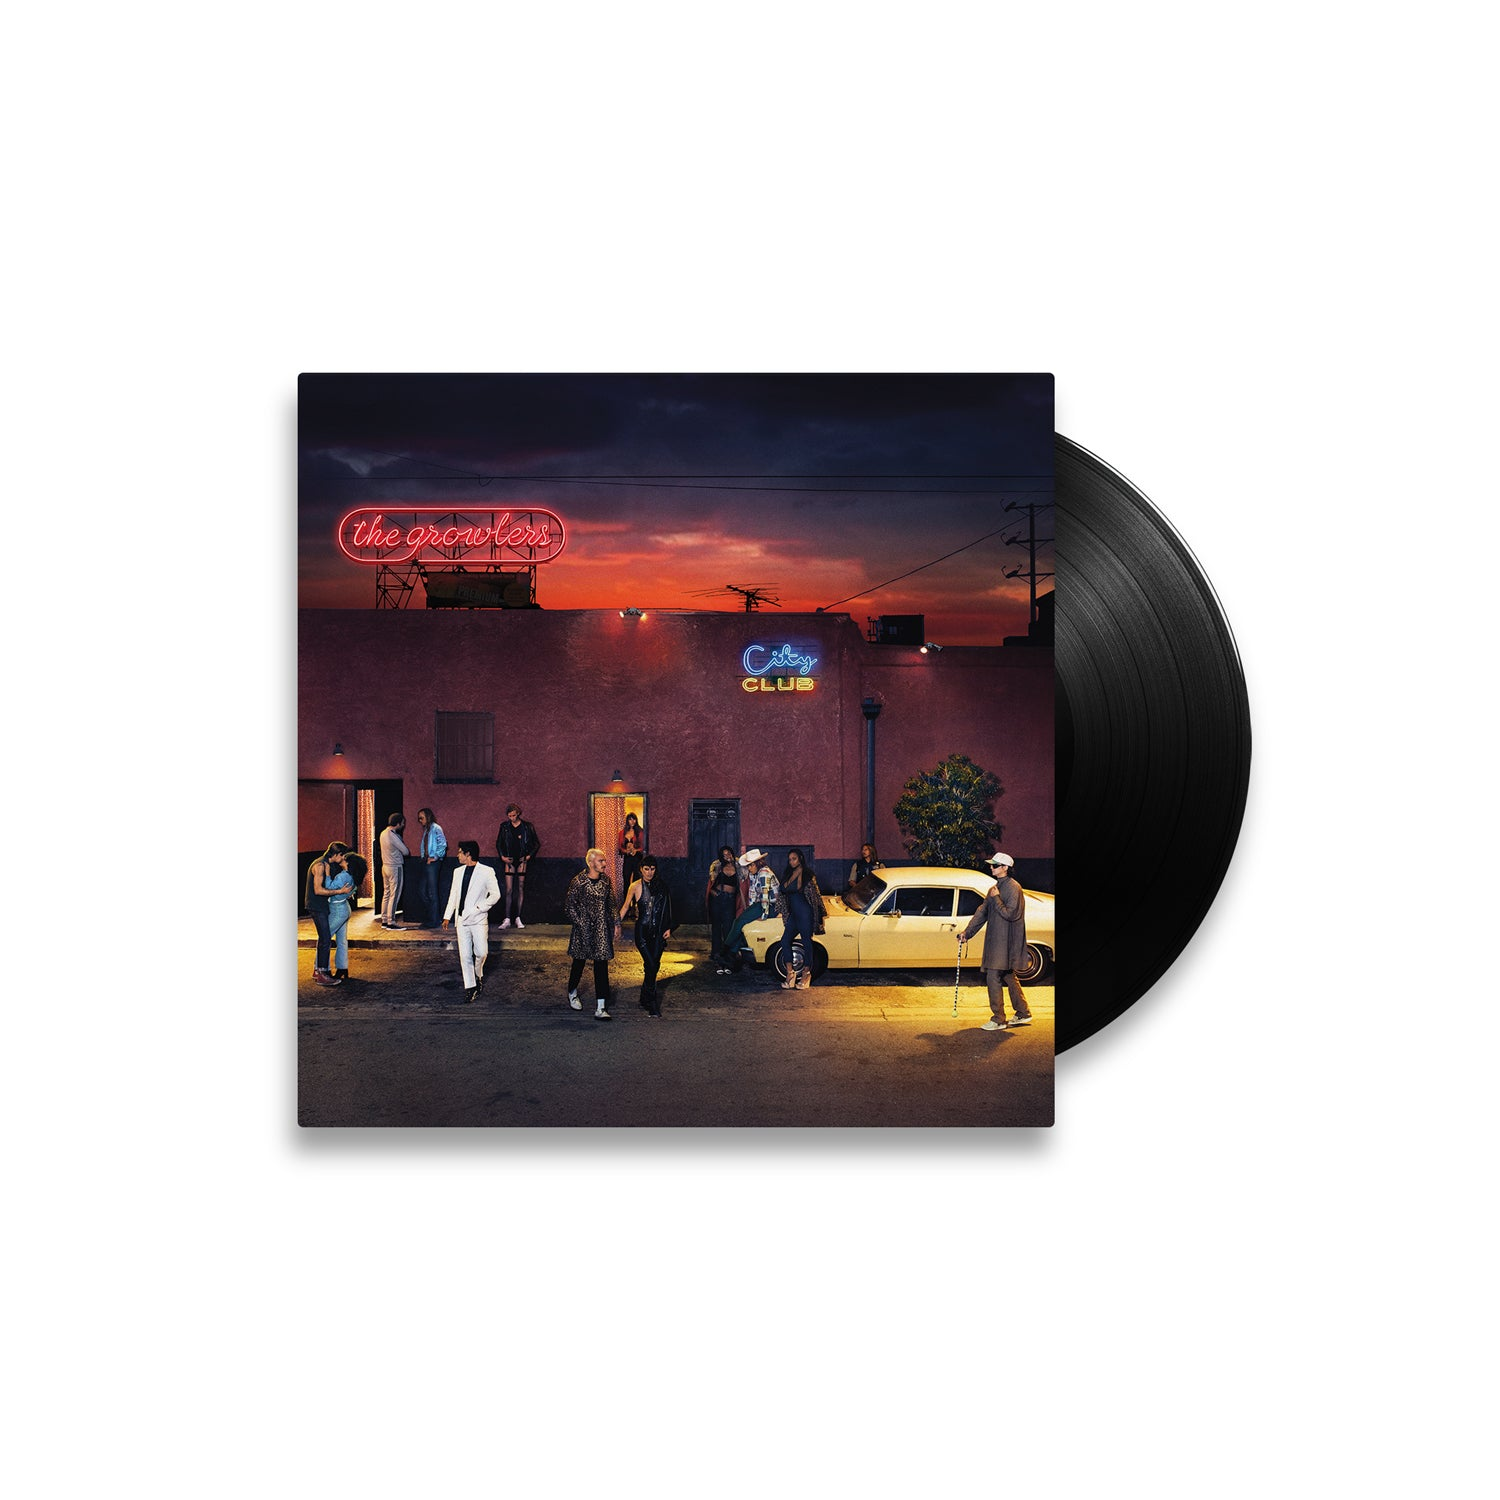 "The Growlers 'City Club' 12"" Vinyl LP"